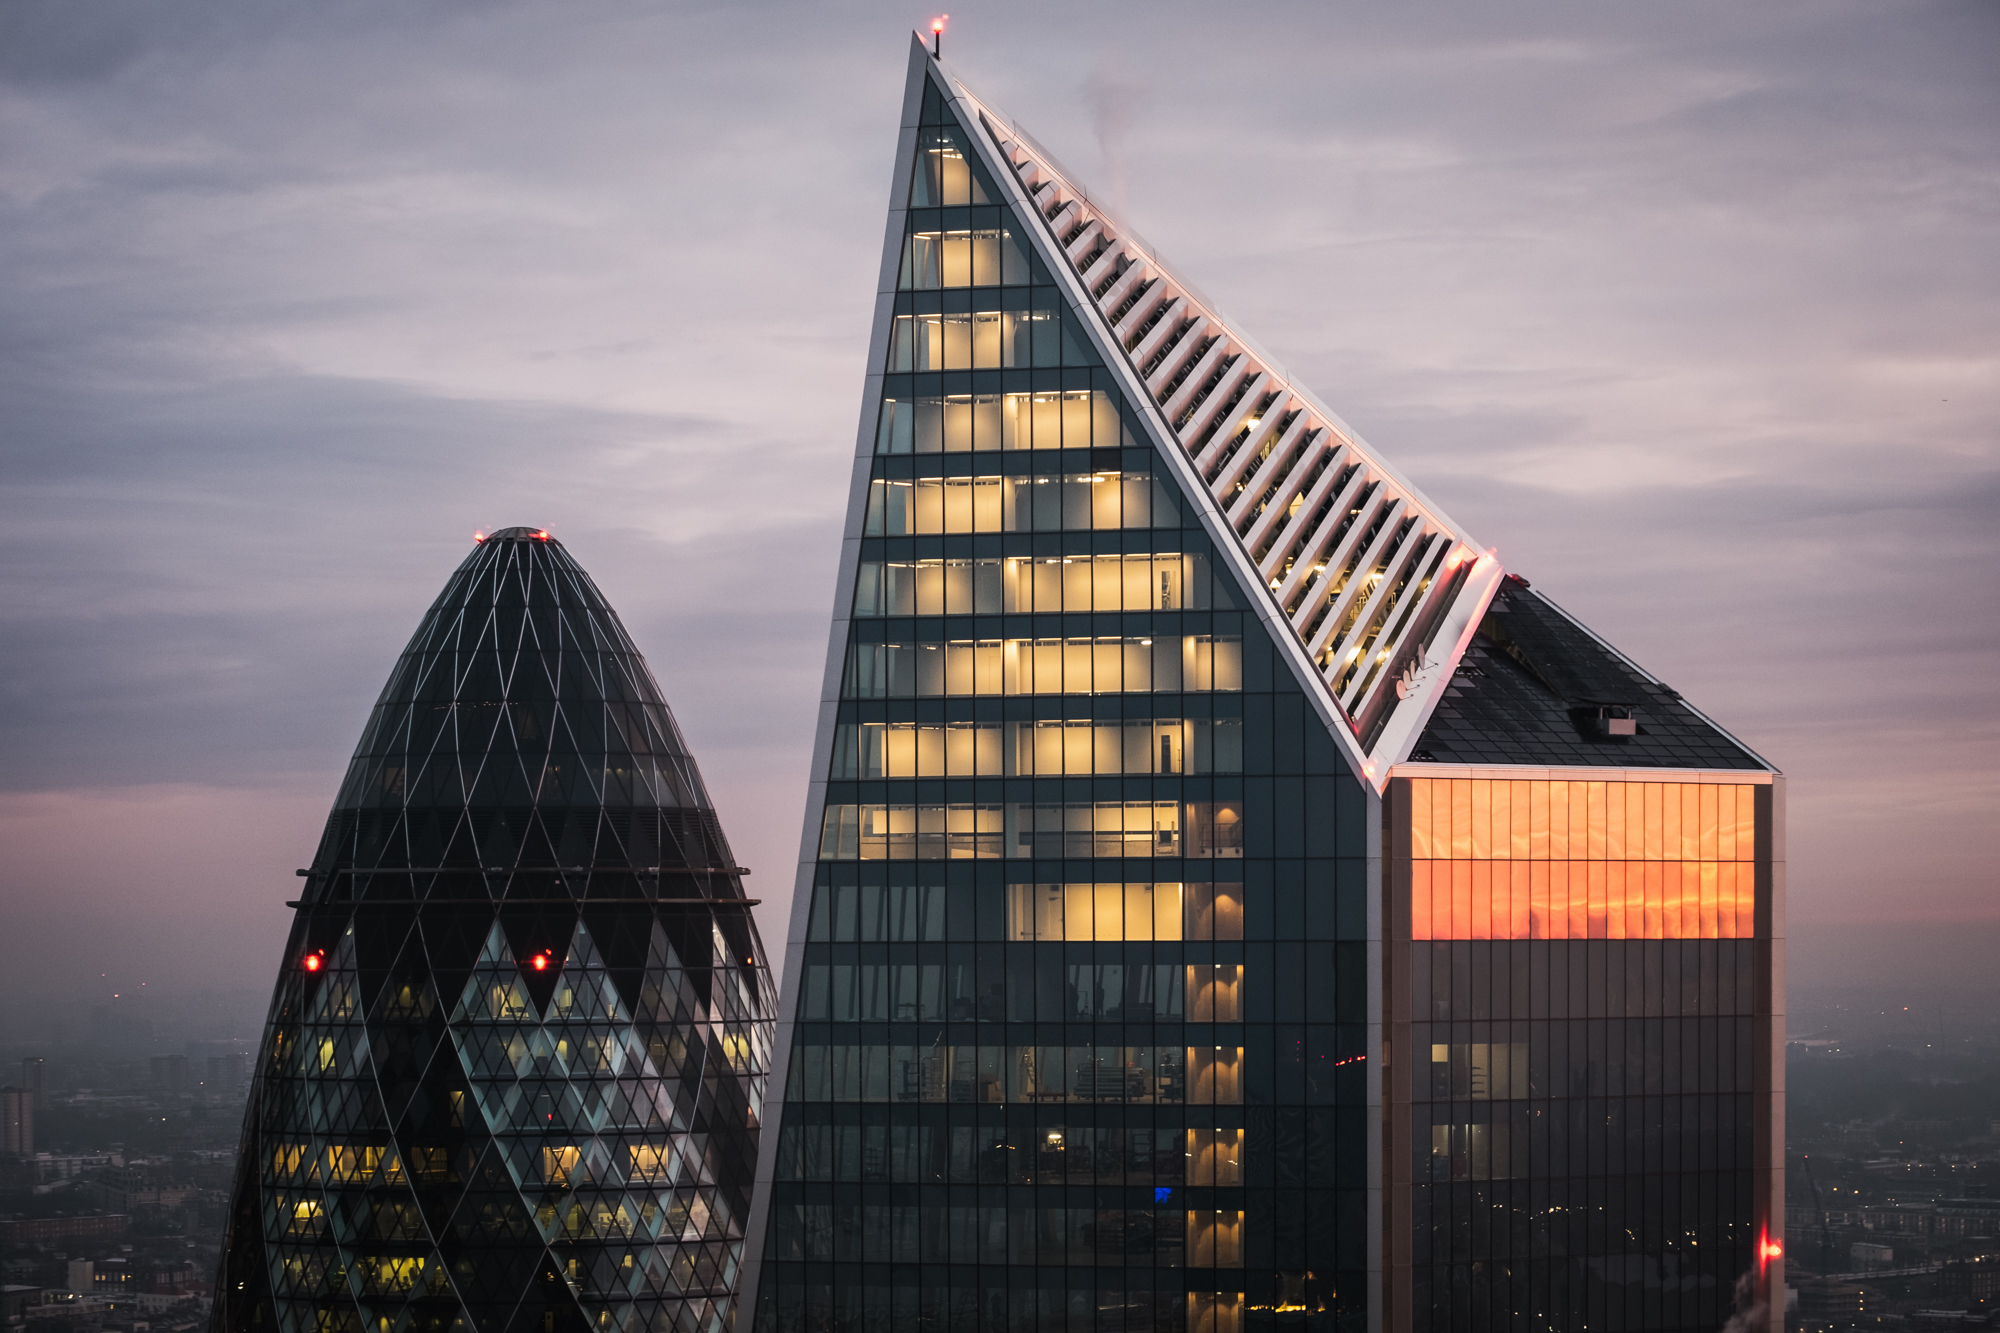 A photo of the top of the Gherkin and Scalpel buildings taken from the Sky Garden by Trevor Sherwin